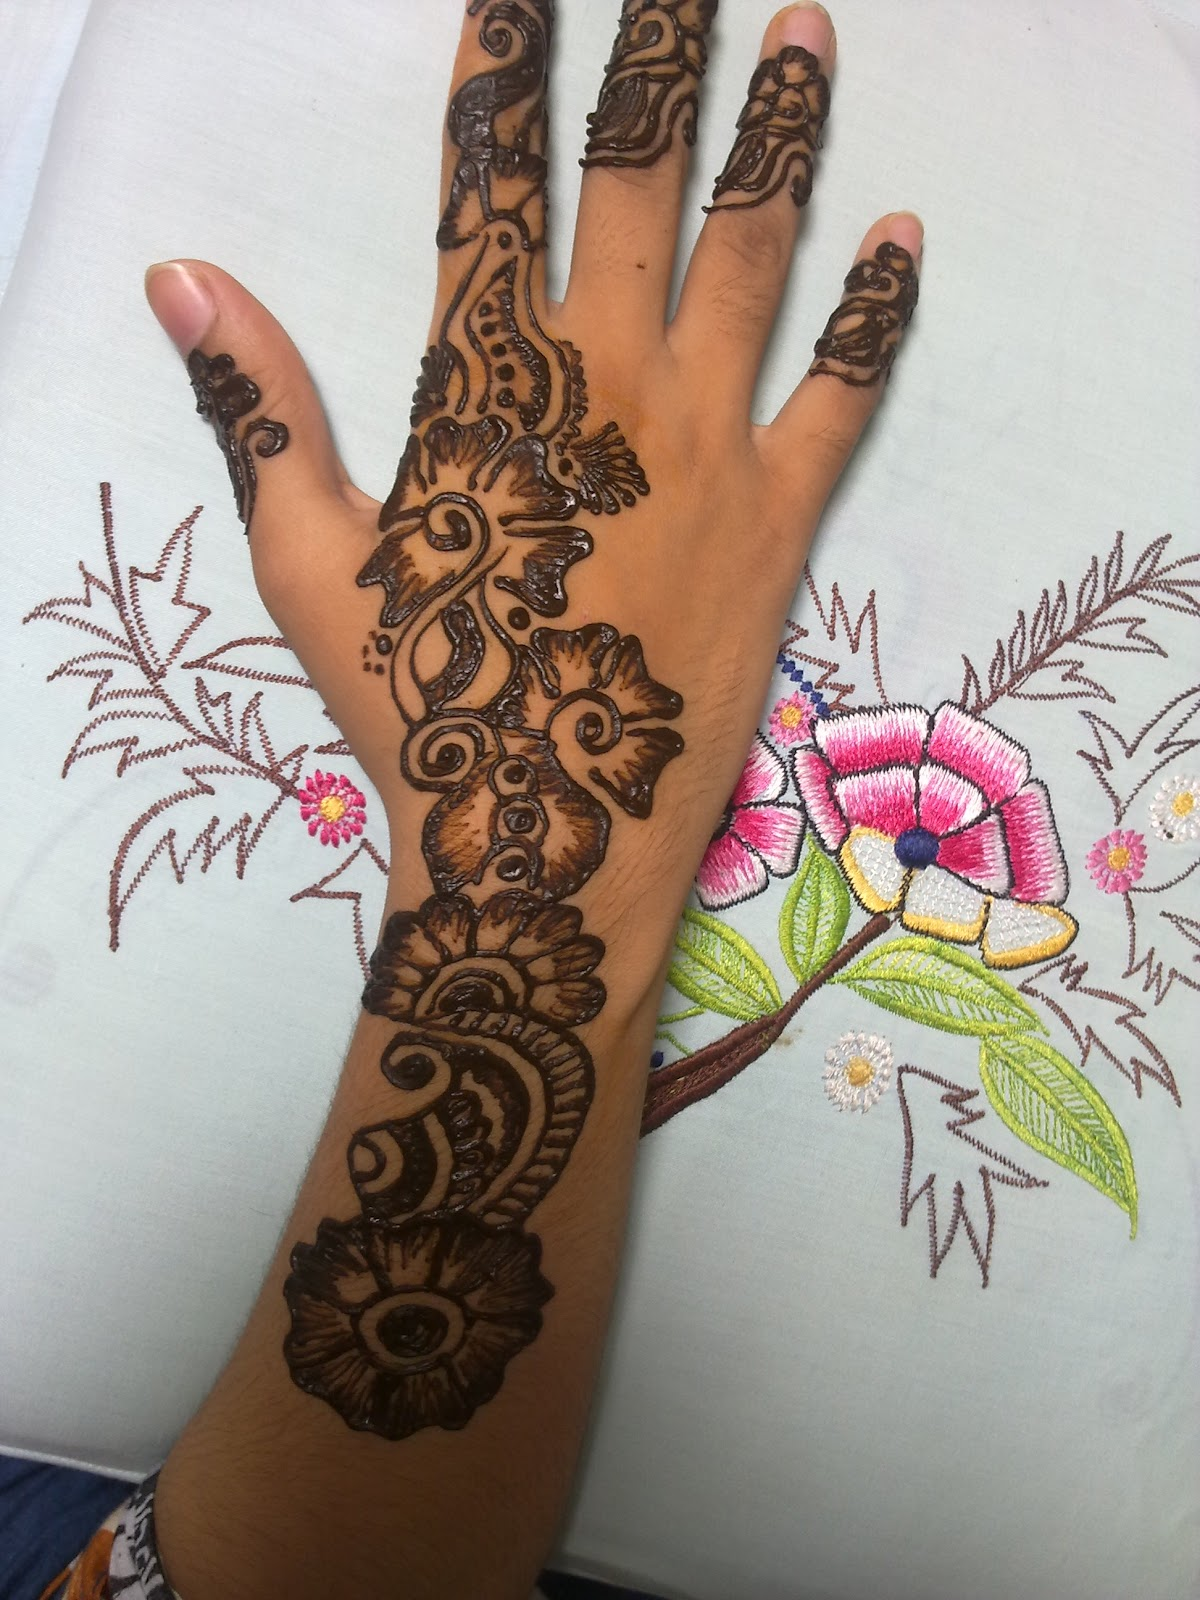 Indian mehndi designs for hands indian hand mehndi designs mehndi - Original 30 Beautiful And Simple Henna Mehndi Designs Ideas For Hands